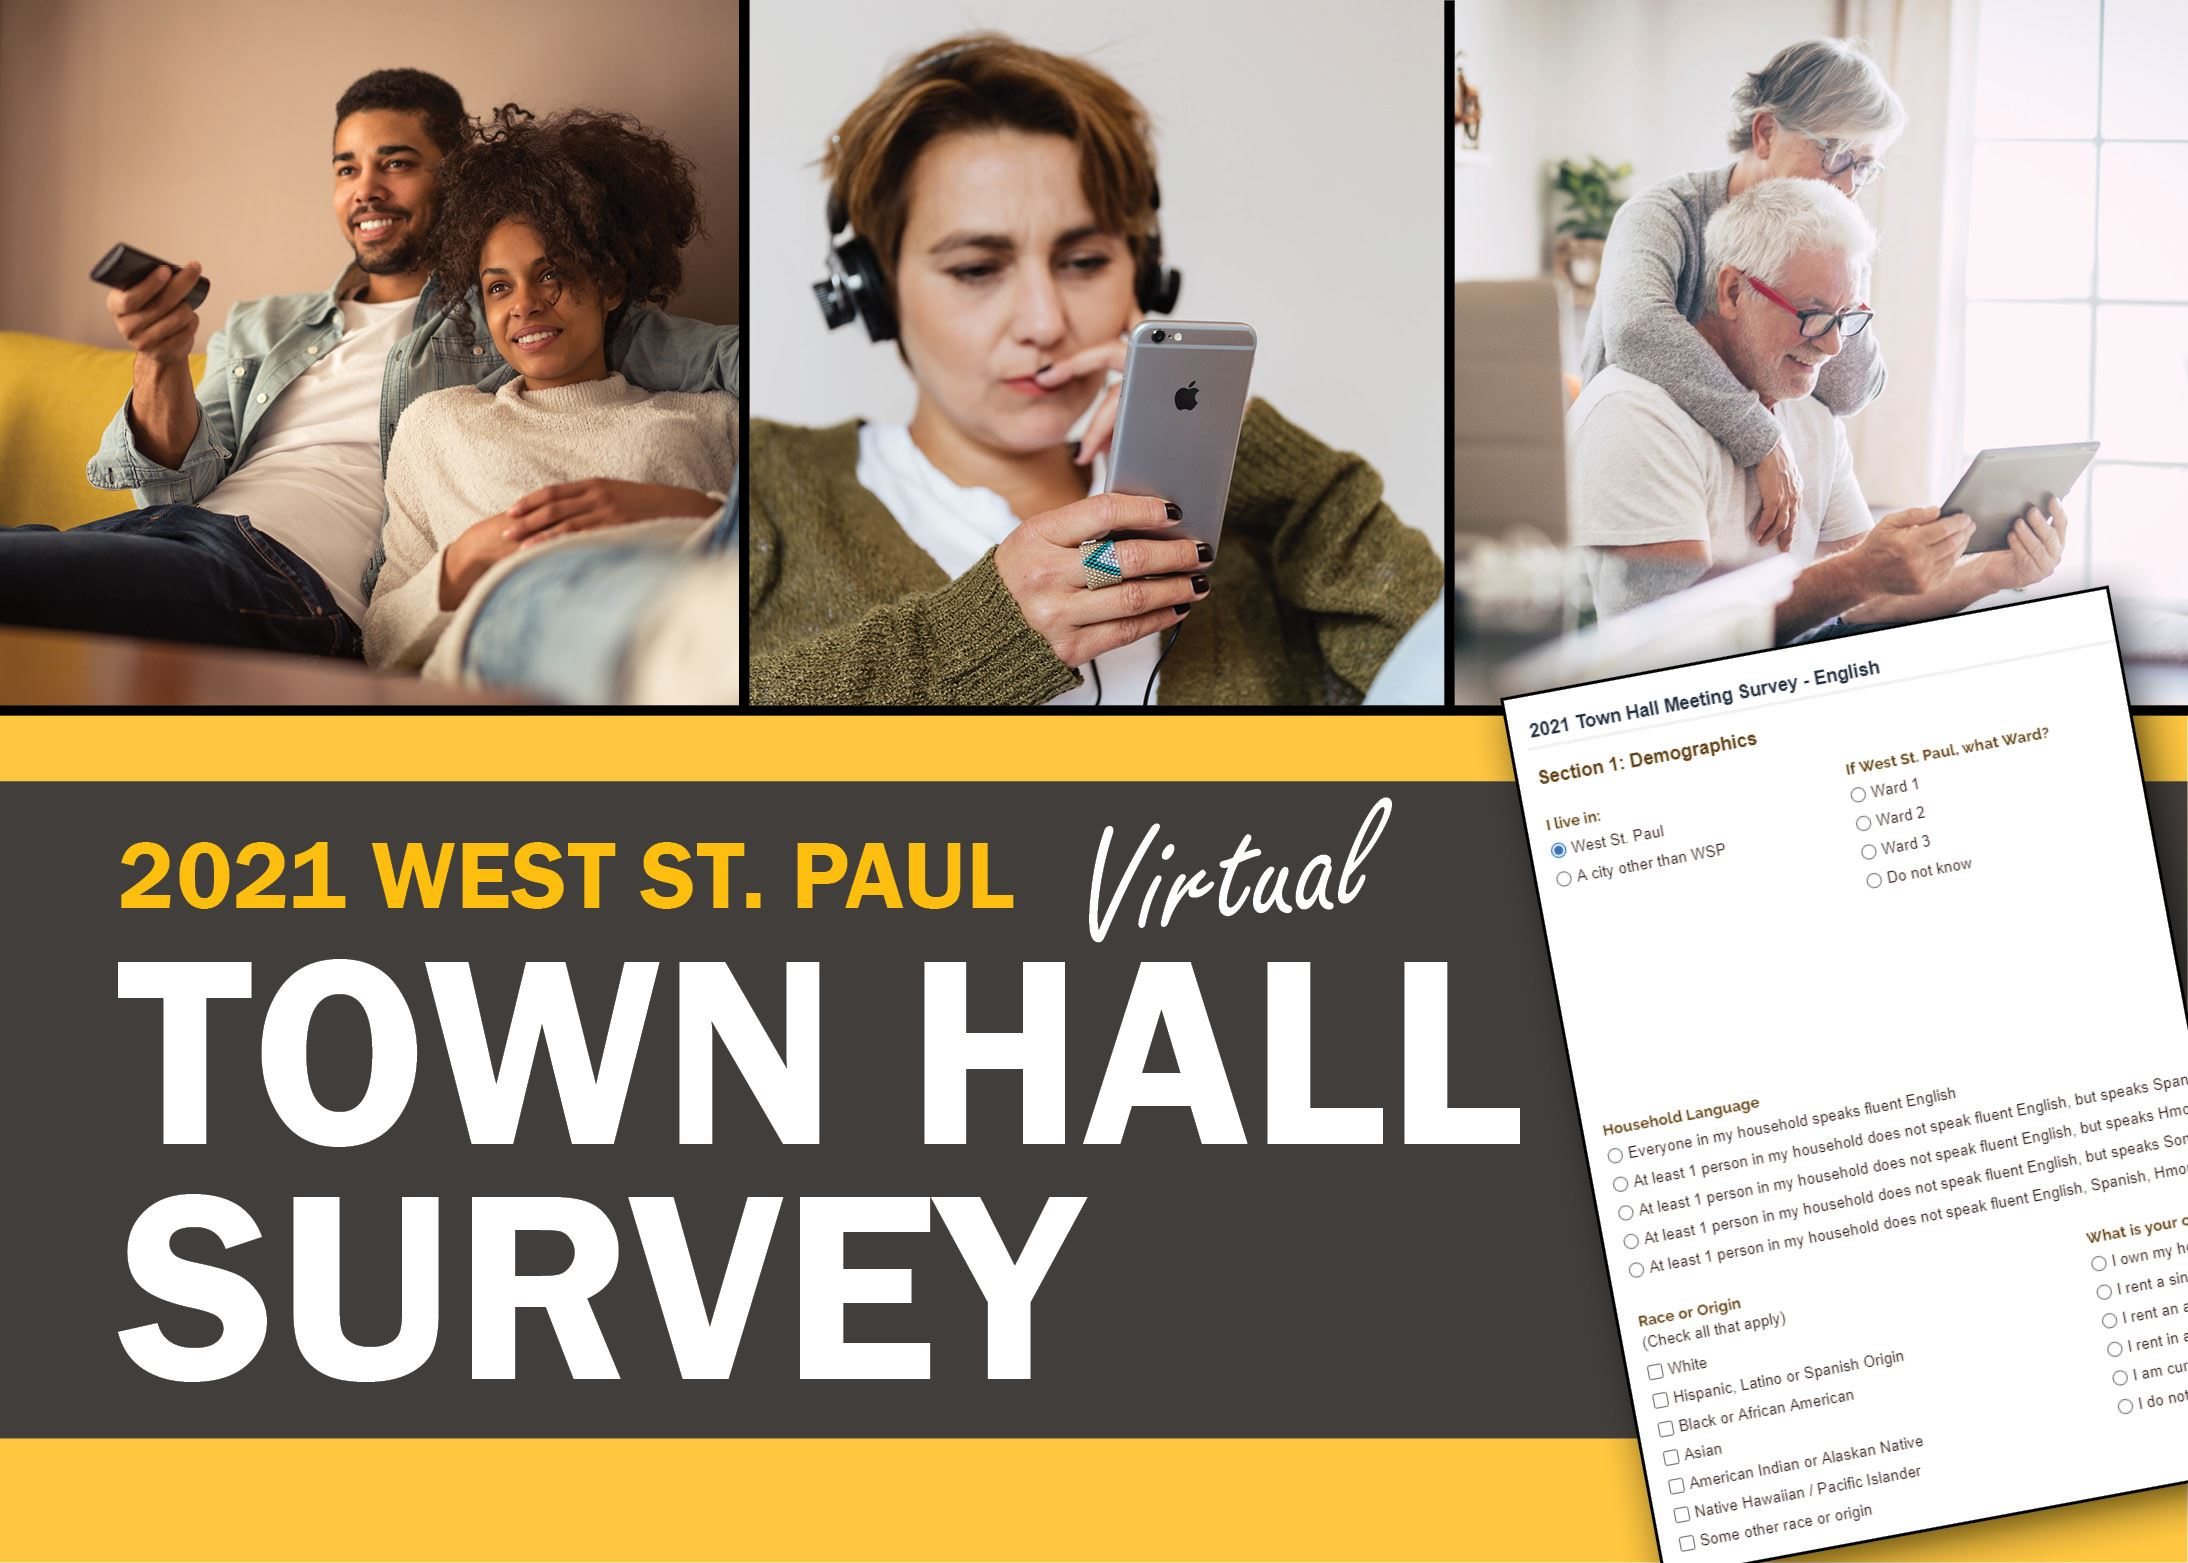 Town Hall Survey Graphic Link